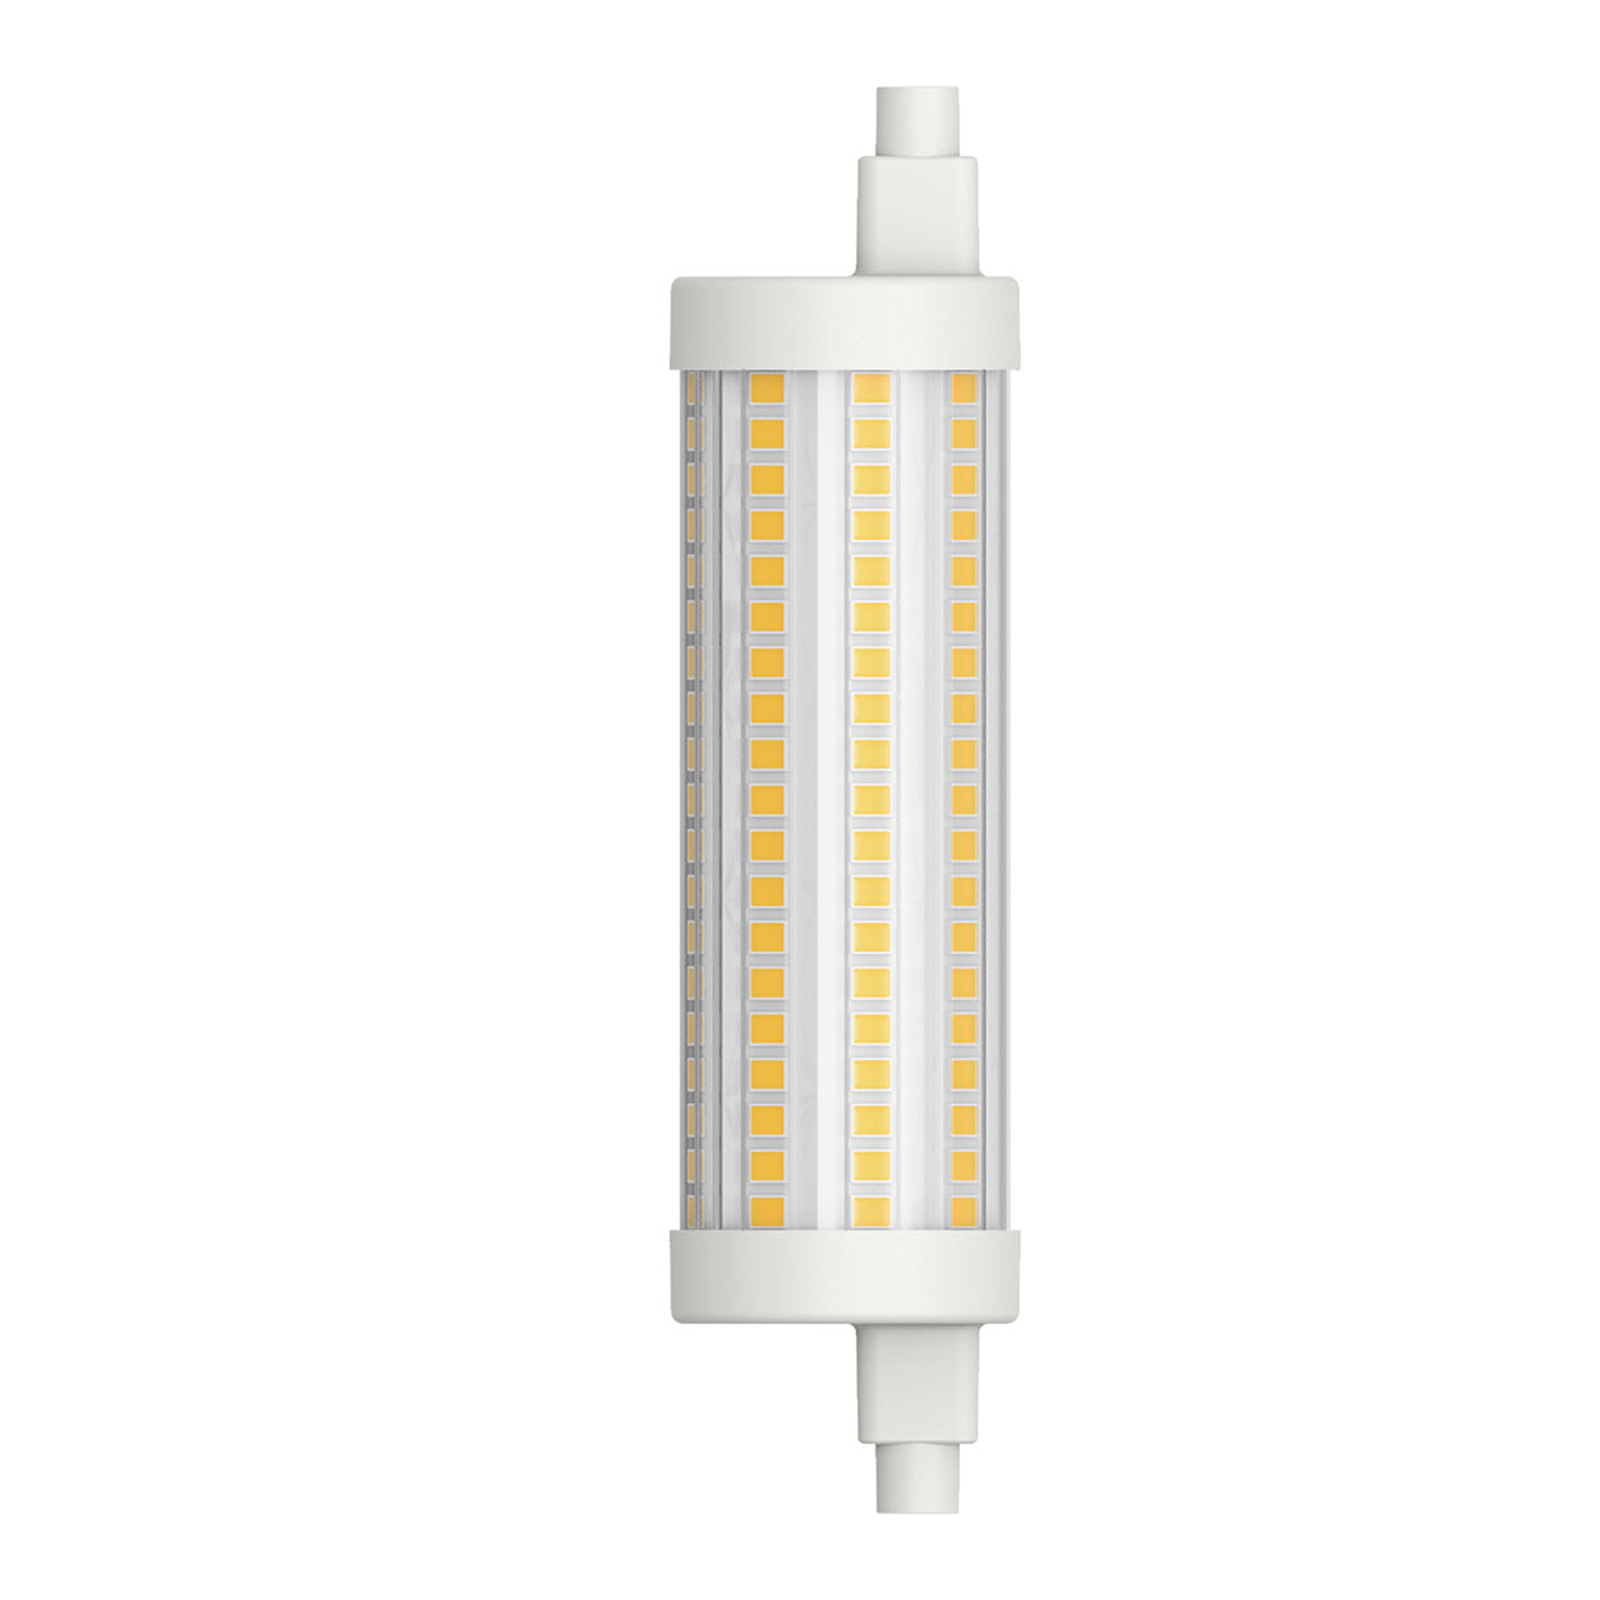 Tube LED R7s 117,6mm 15W blanc chaud dimmable